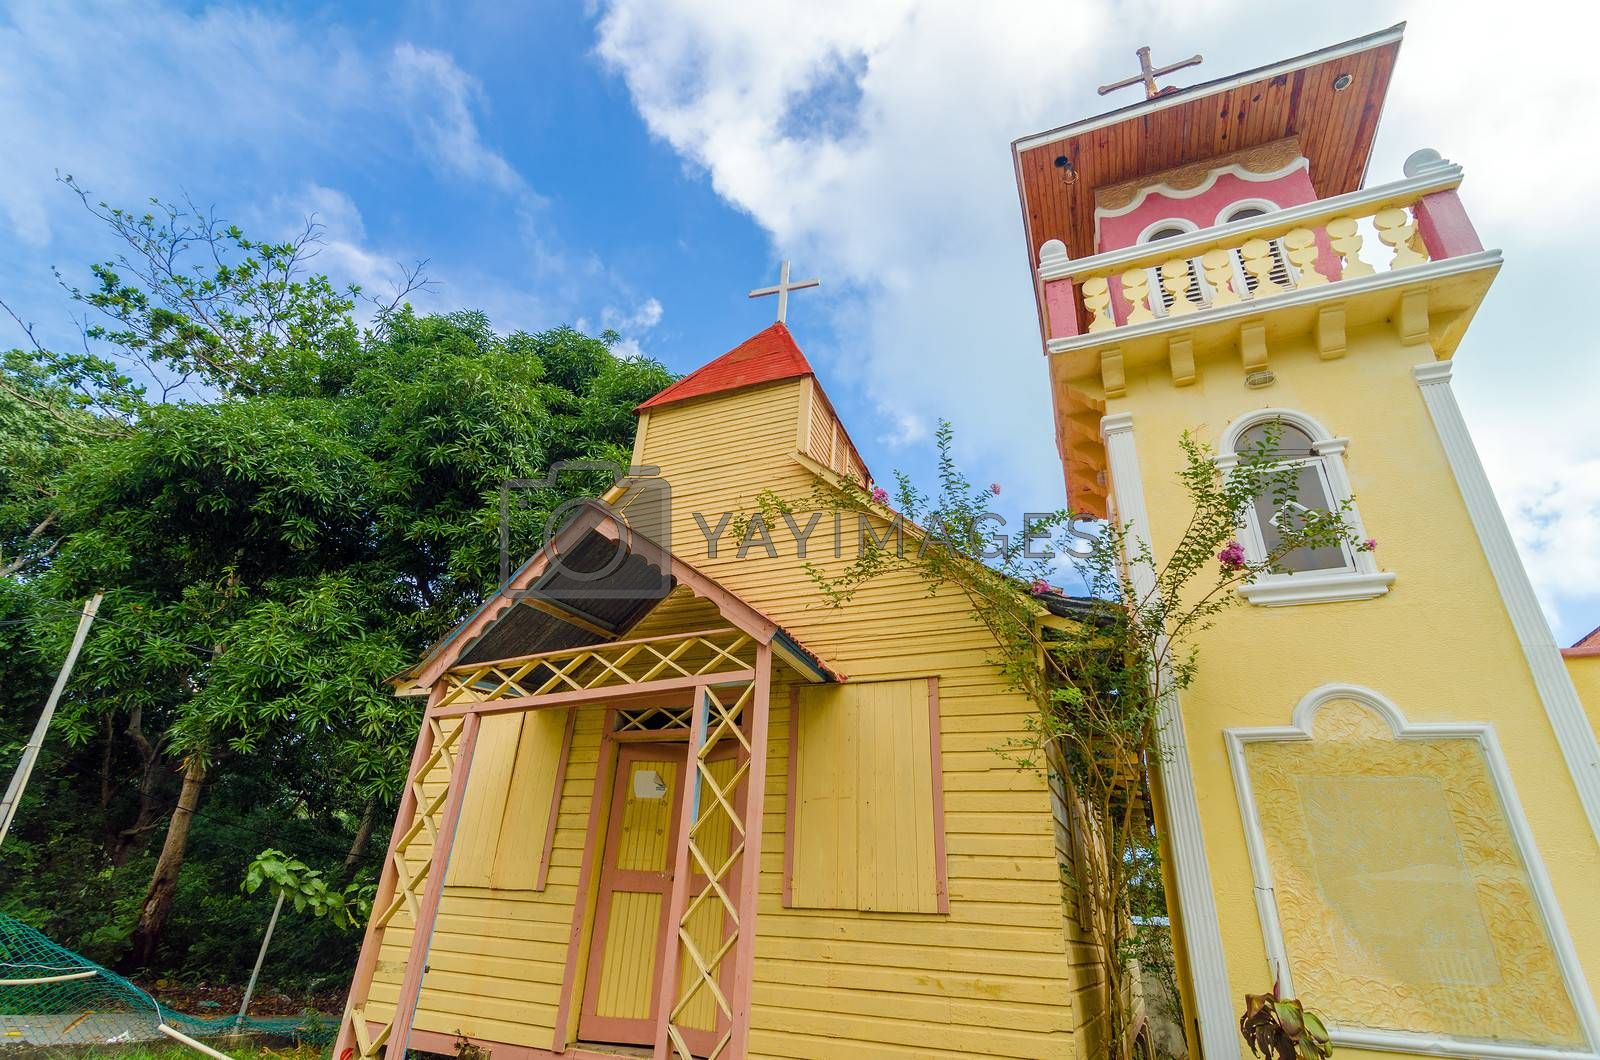 Yellow and pink church on the Caribbean island of San Andres y Providencia, Colombia